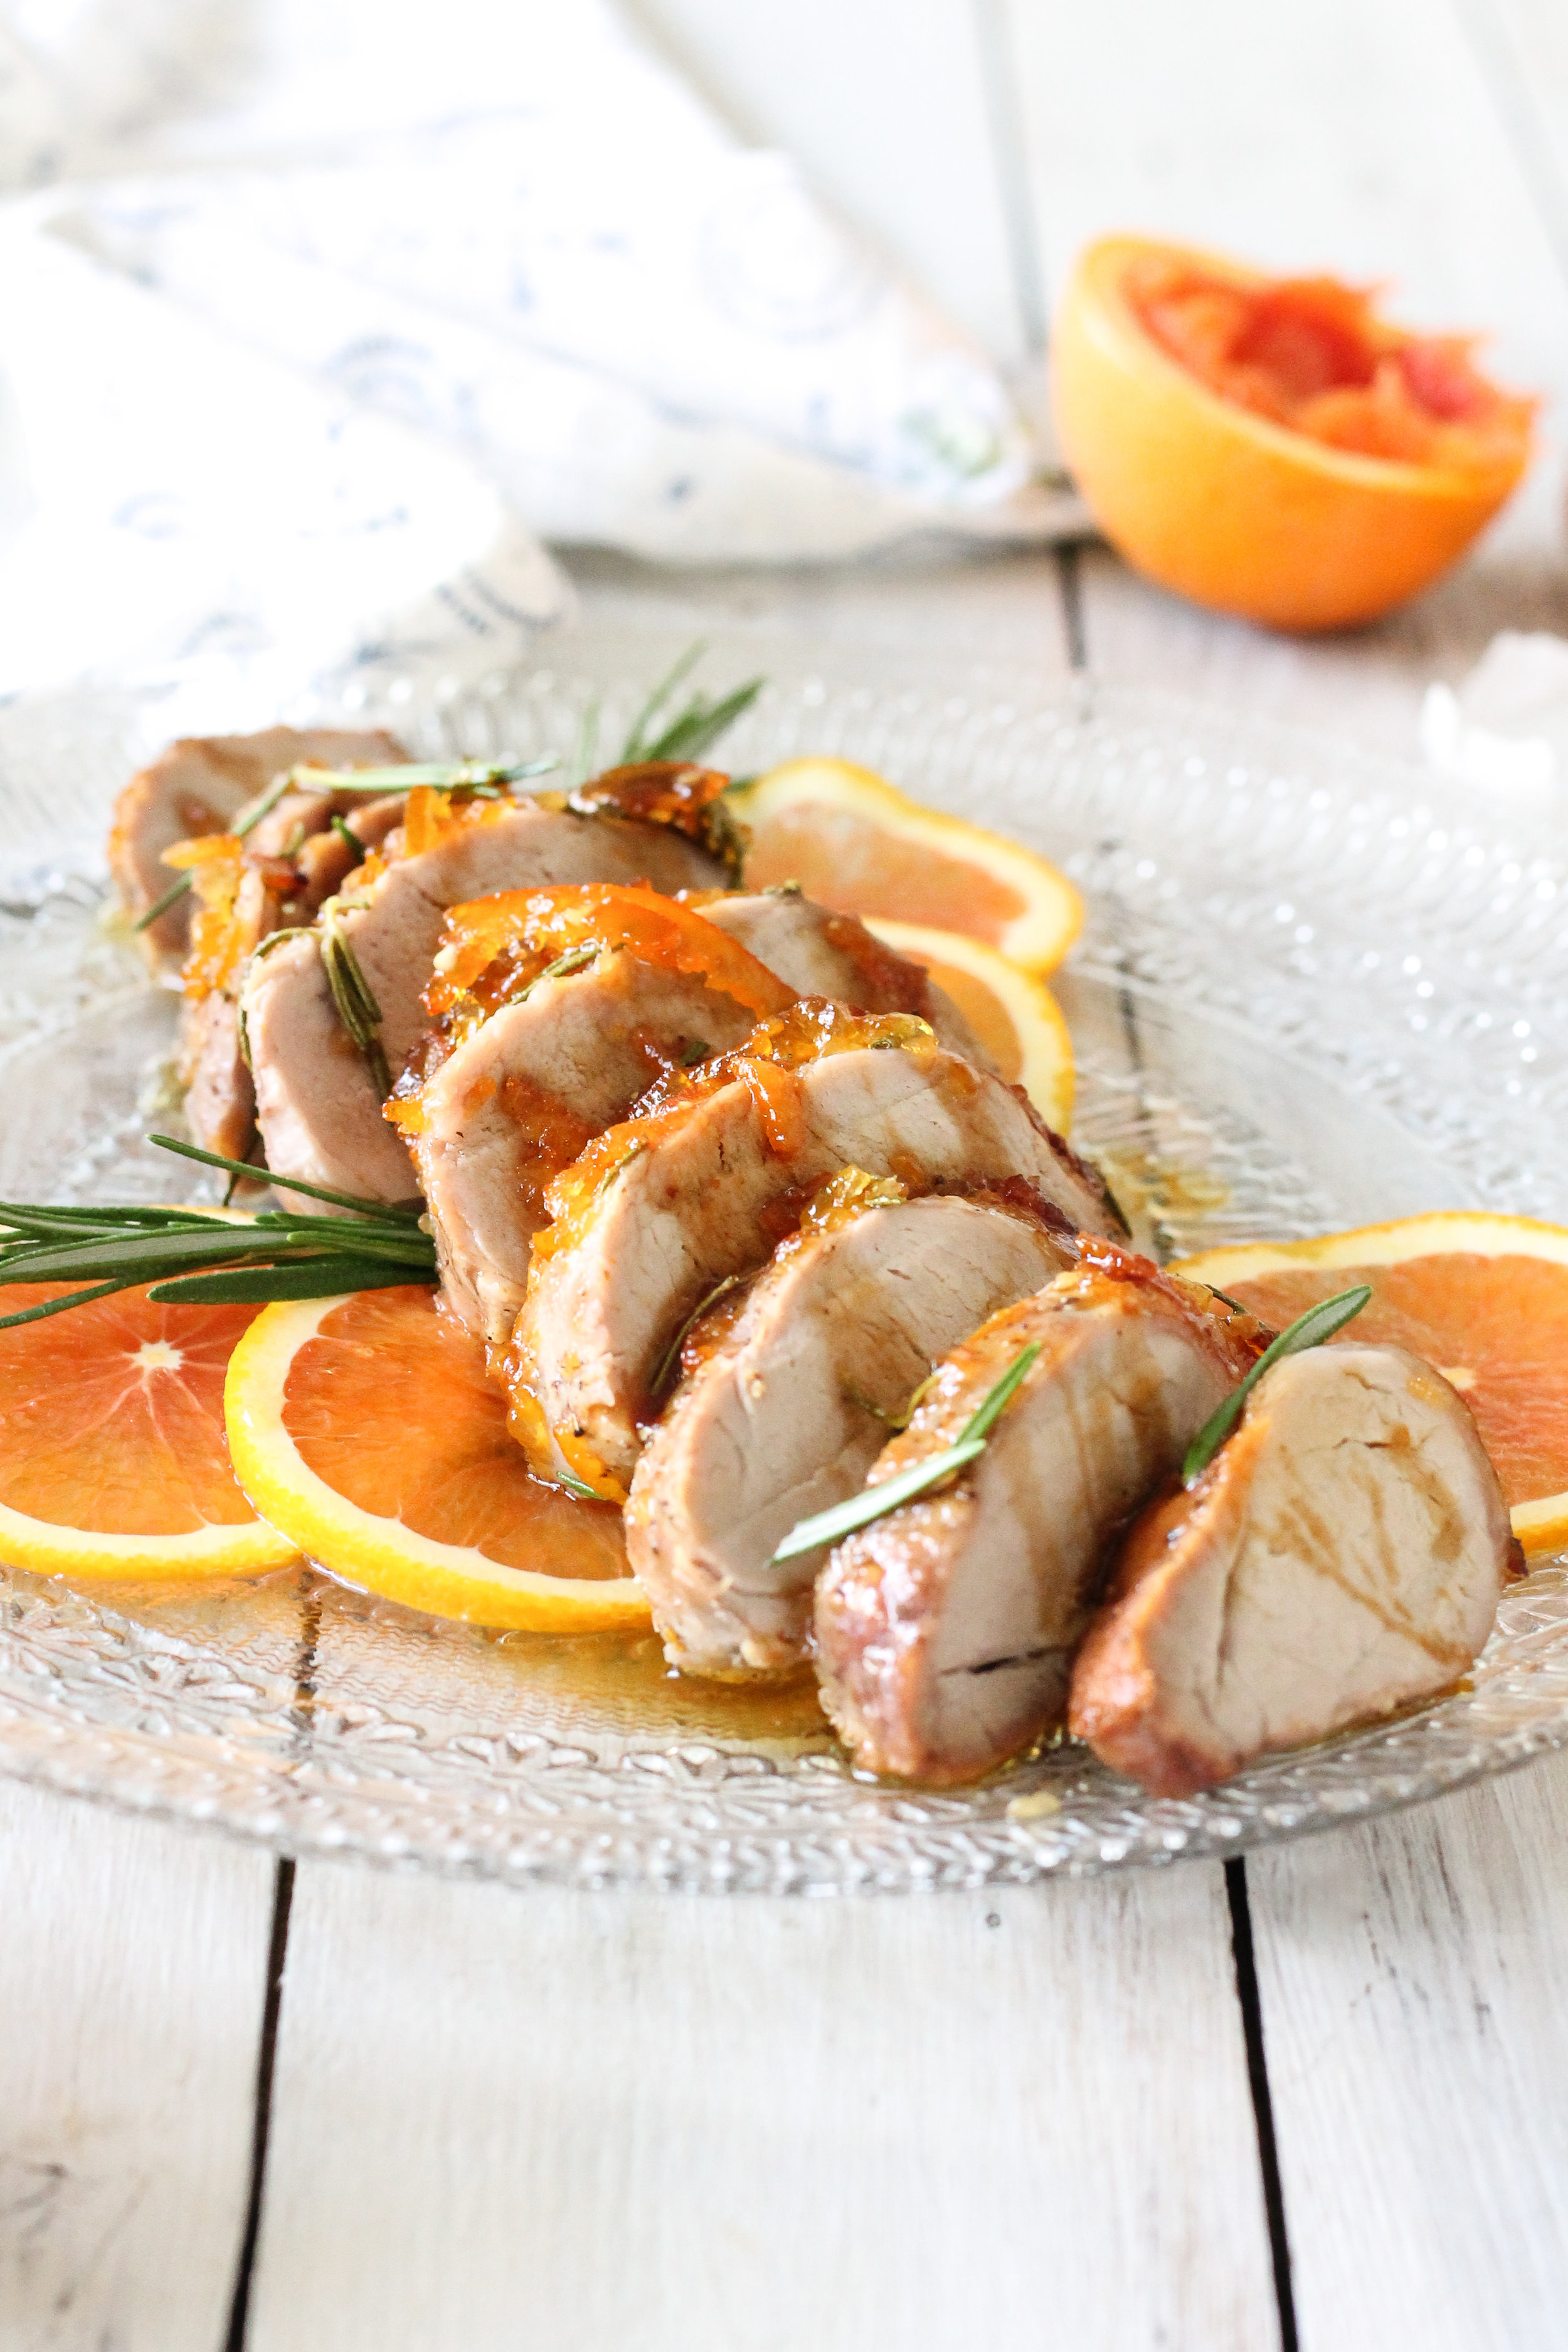 This super easy pork tenderloin is glazed with orange marmalade and rosemary.  Find the recipe on WWW.PEDANTICFOODIE.COM!